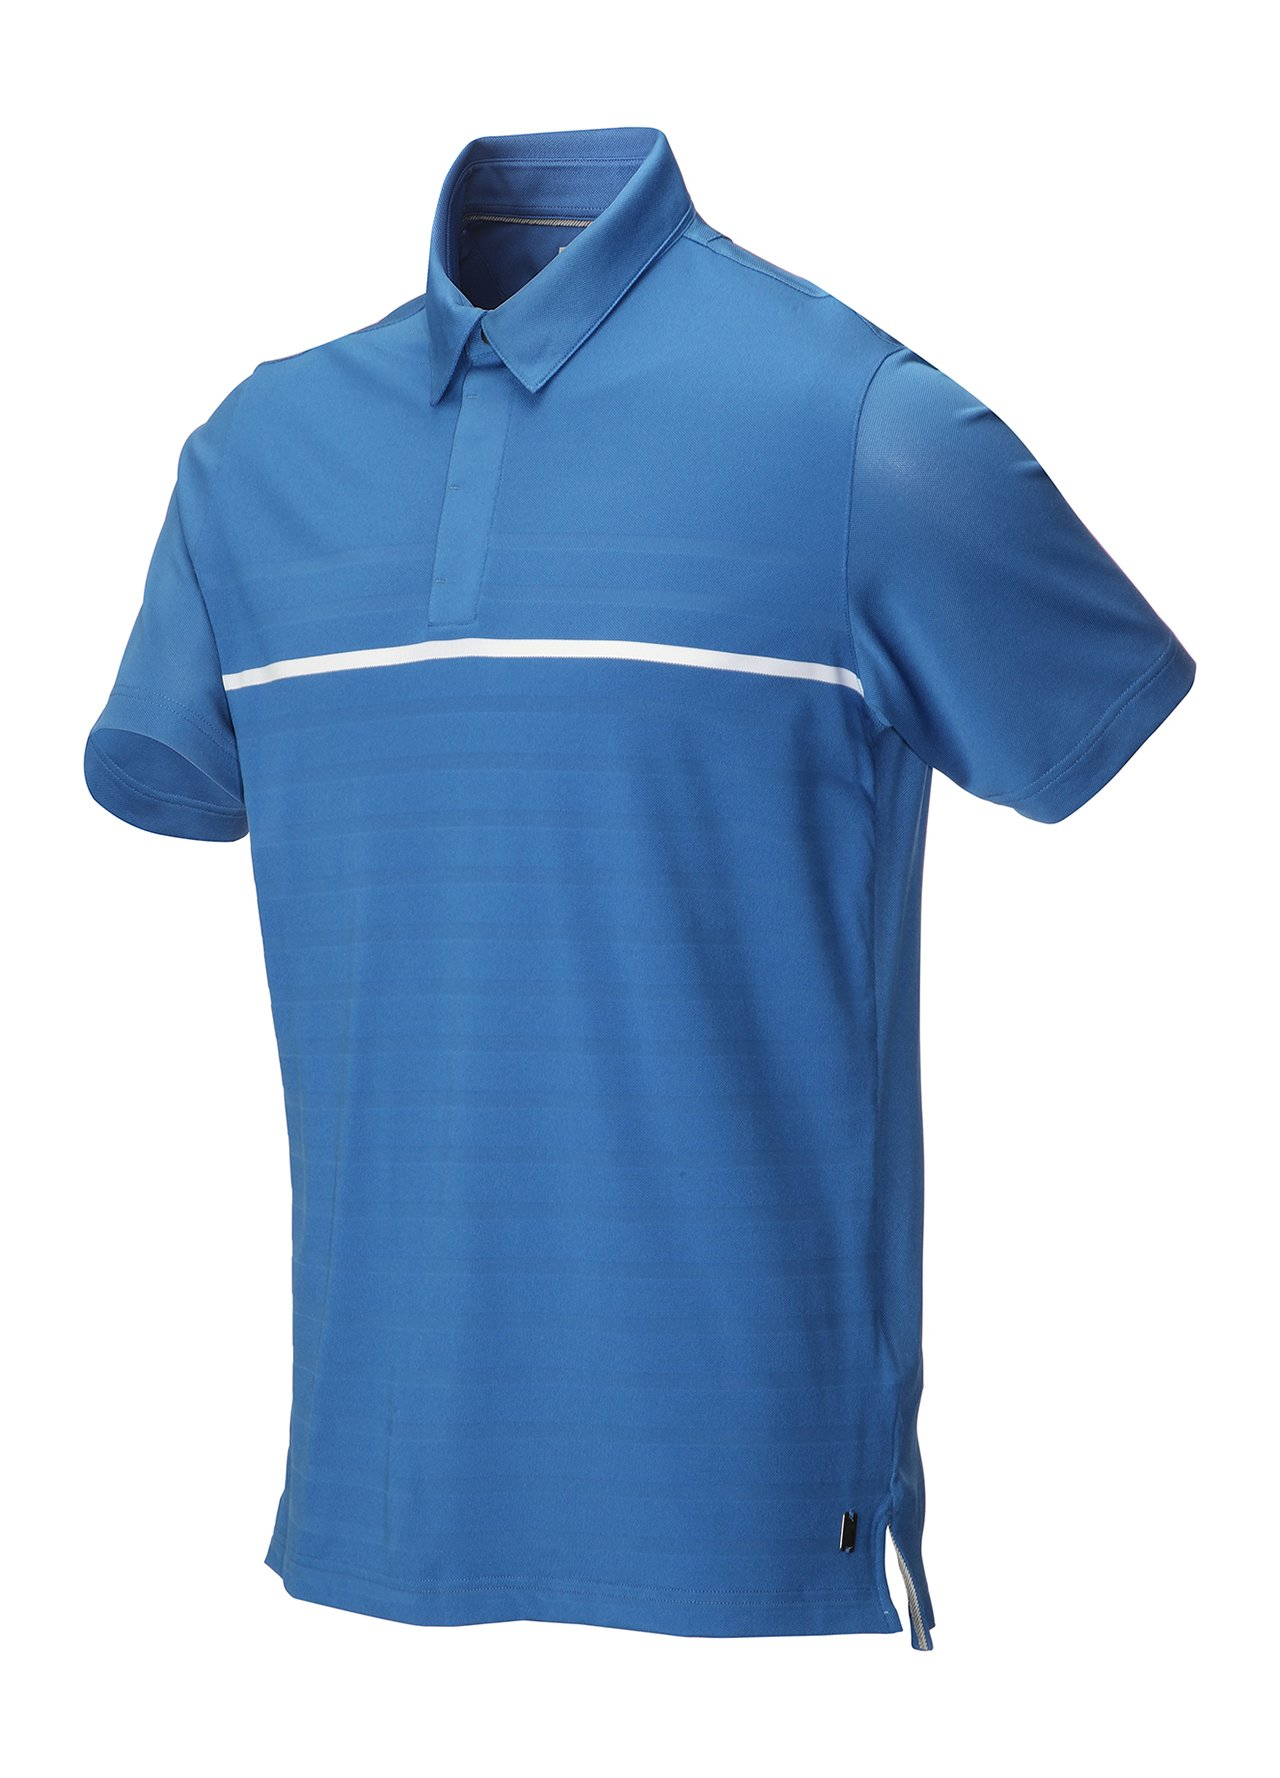 Ashworth mens golf polo shirt sports top 48 off rrp ebay for Mens golf polo shirts